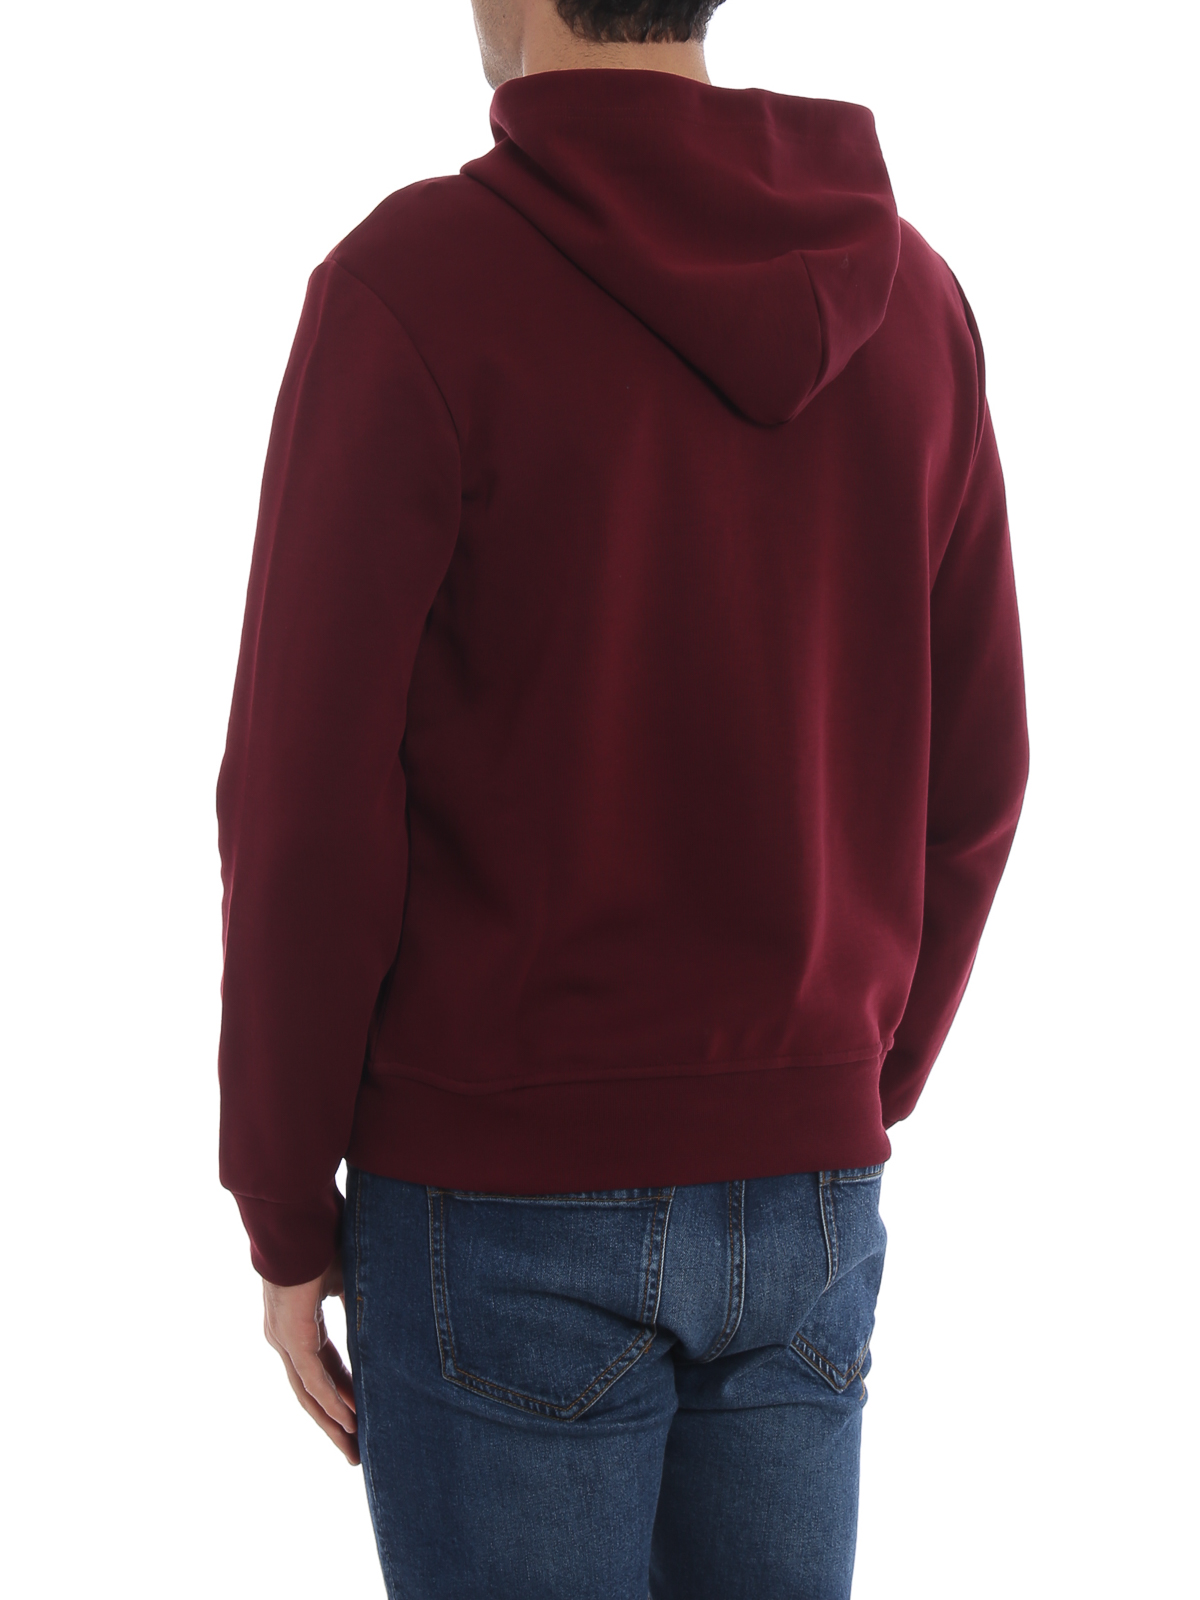 Polo Ralph Lauren Performance Burgundy Zip Up Hoodie Sweatshirts